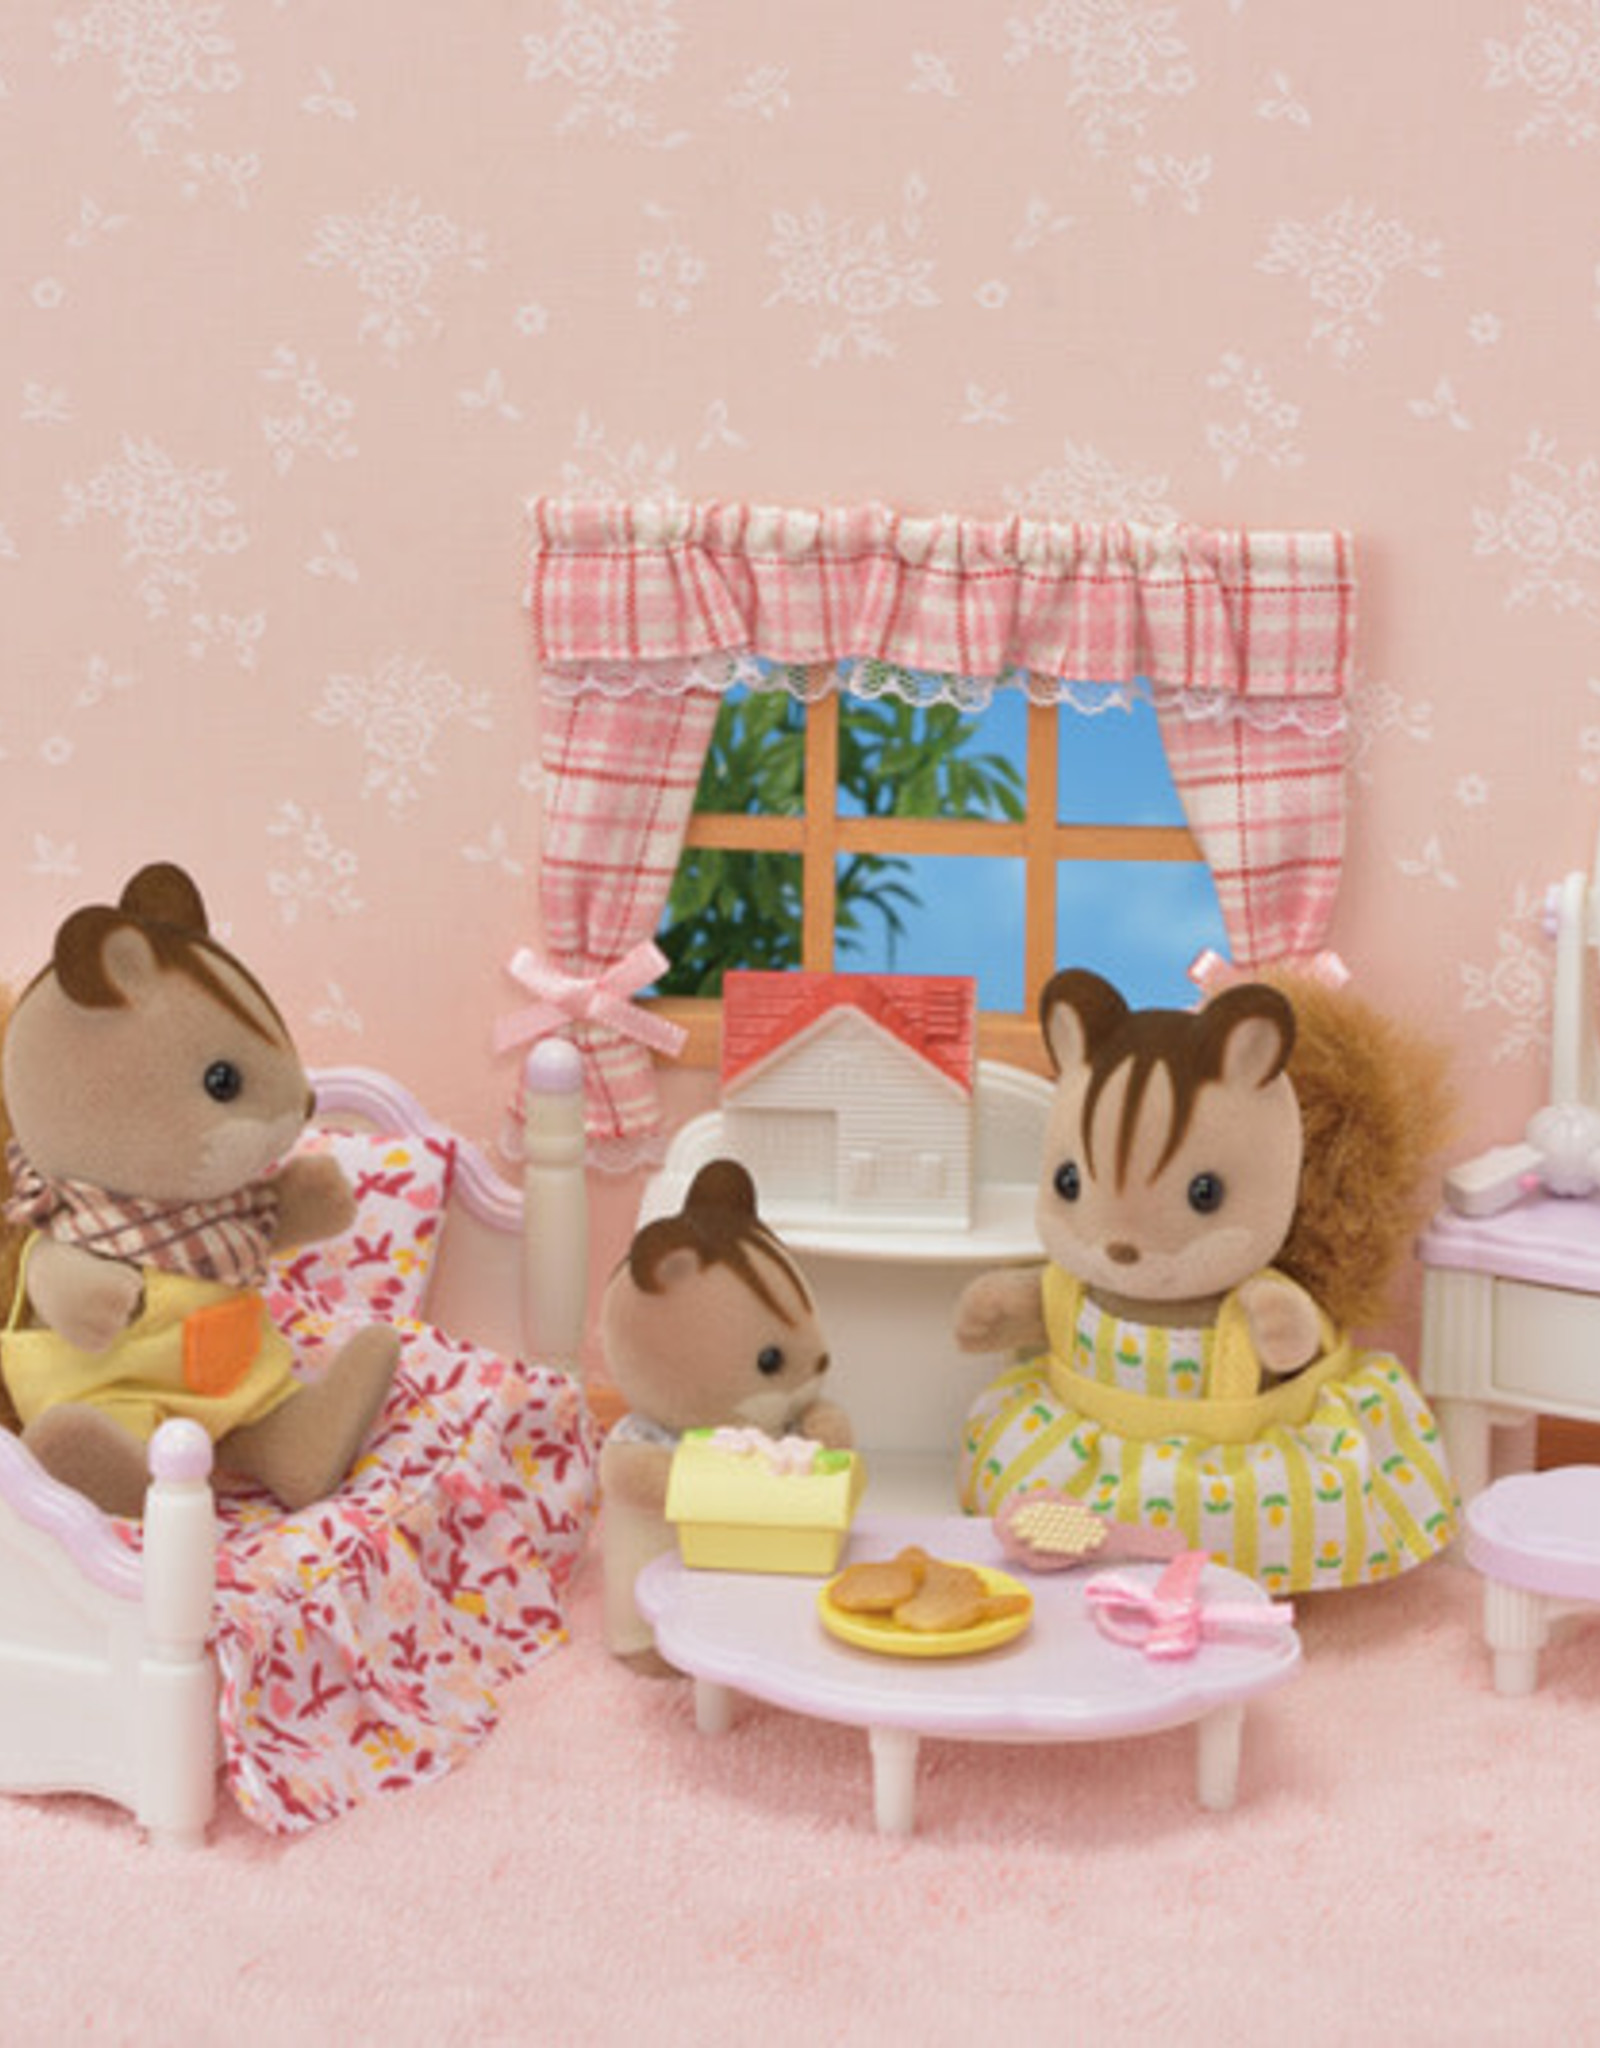 Calico Critters Bedroom and Vanity